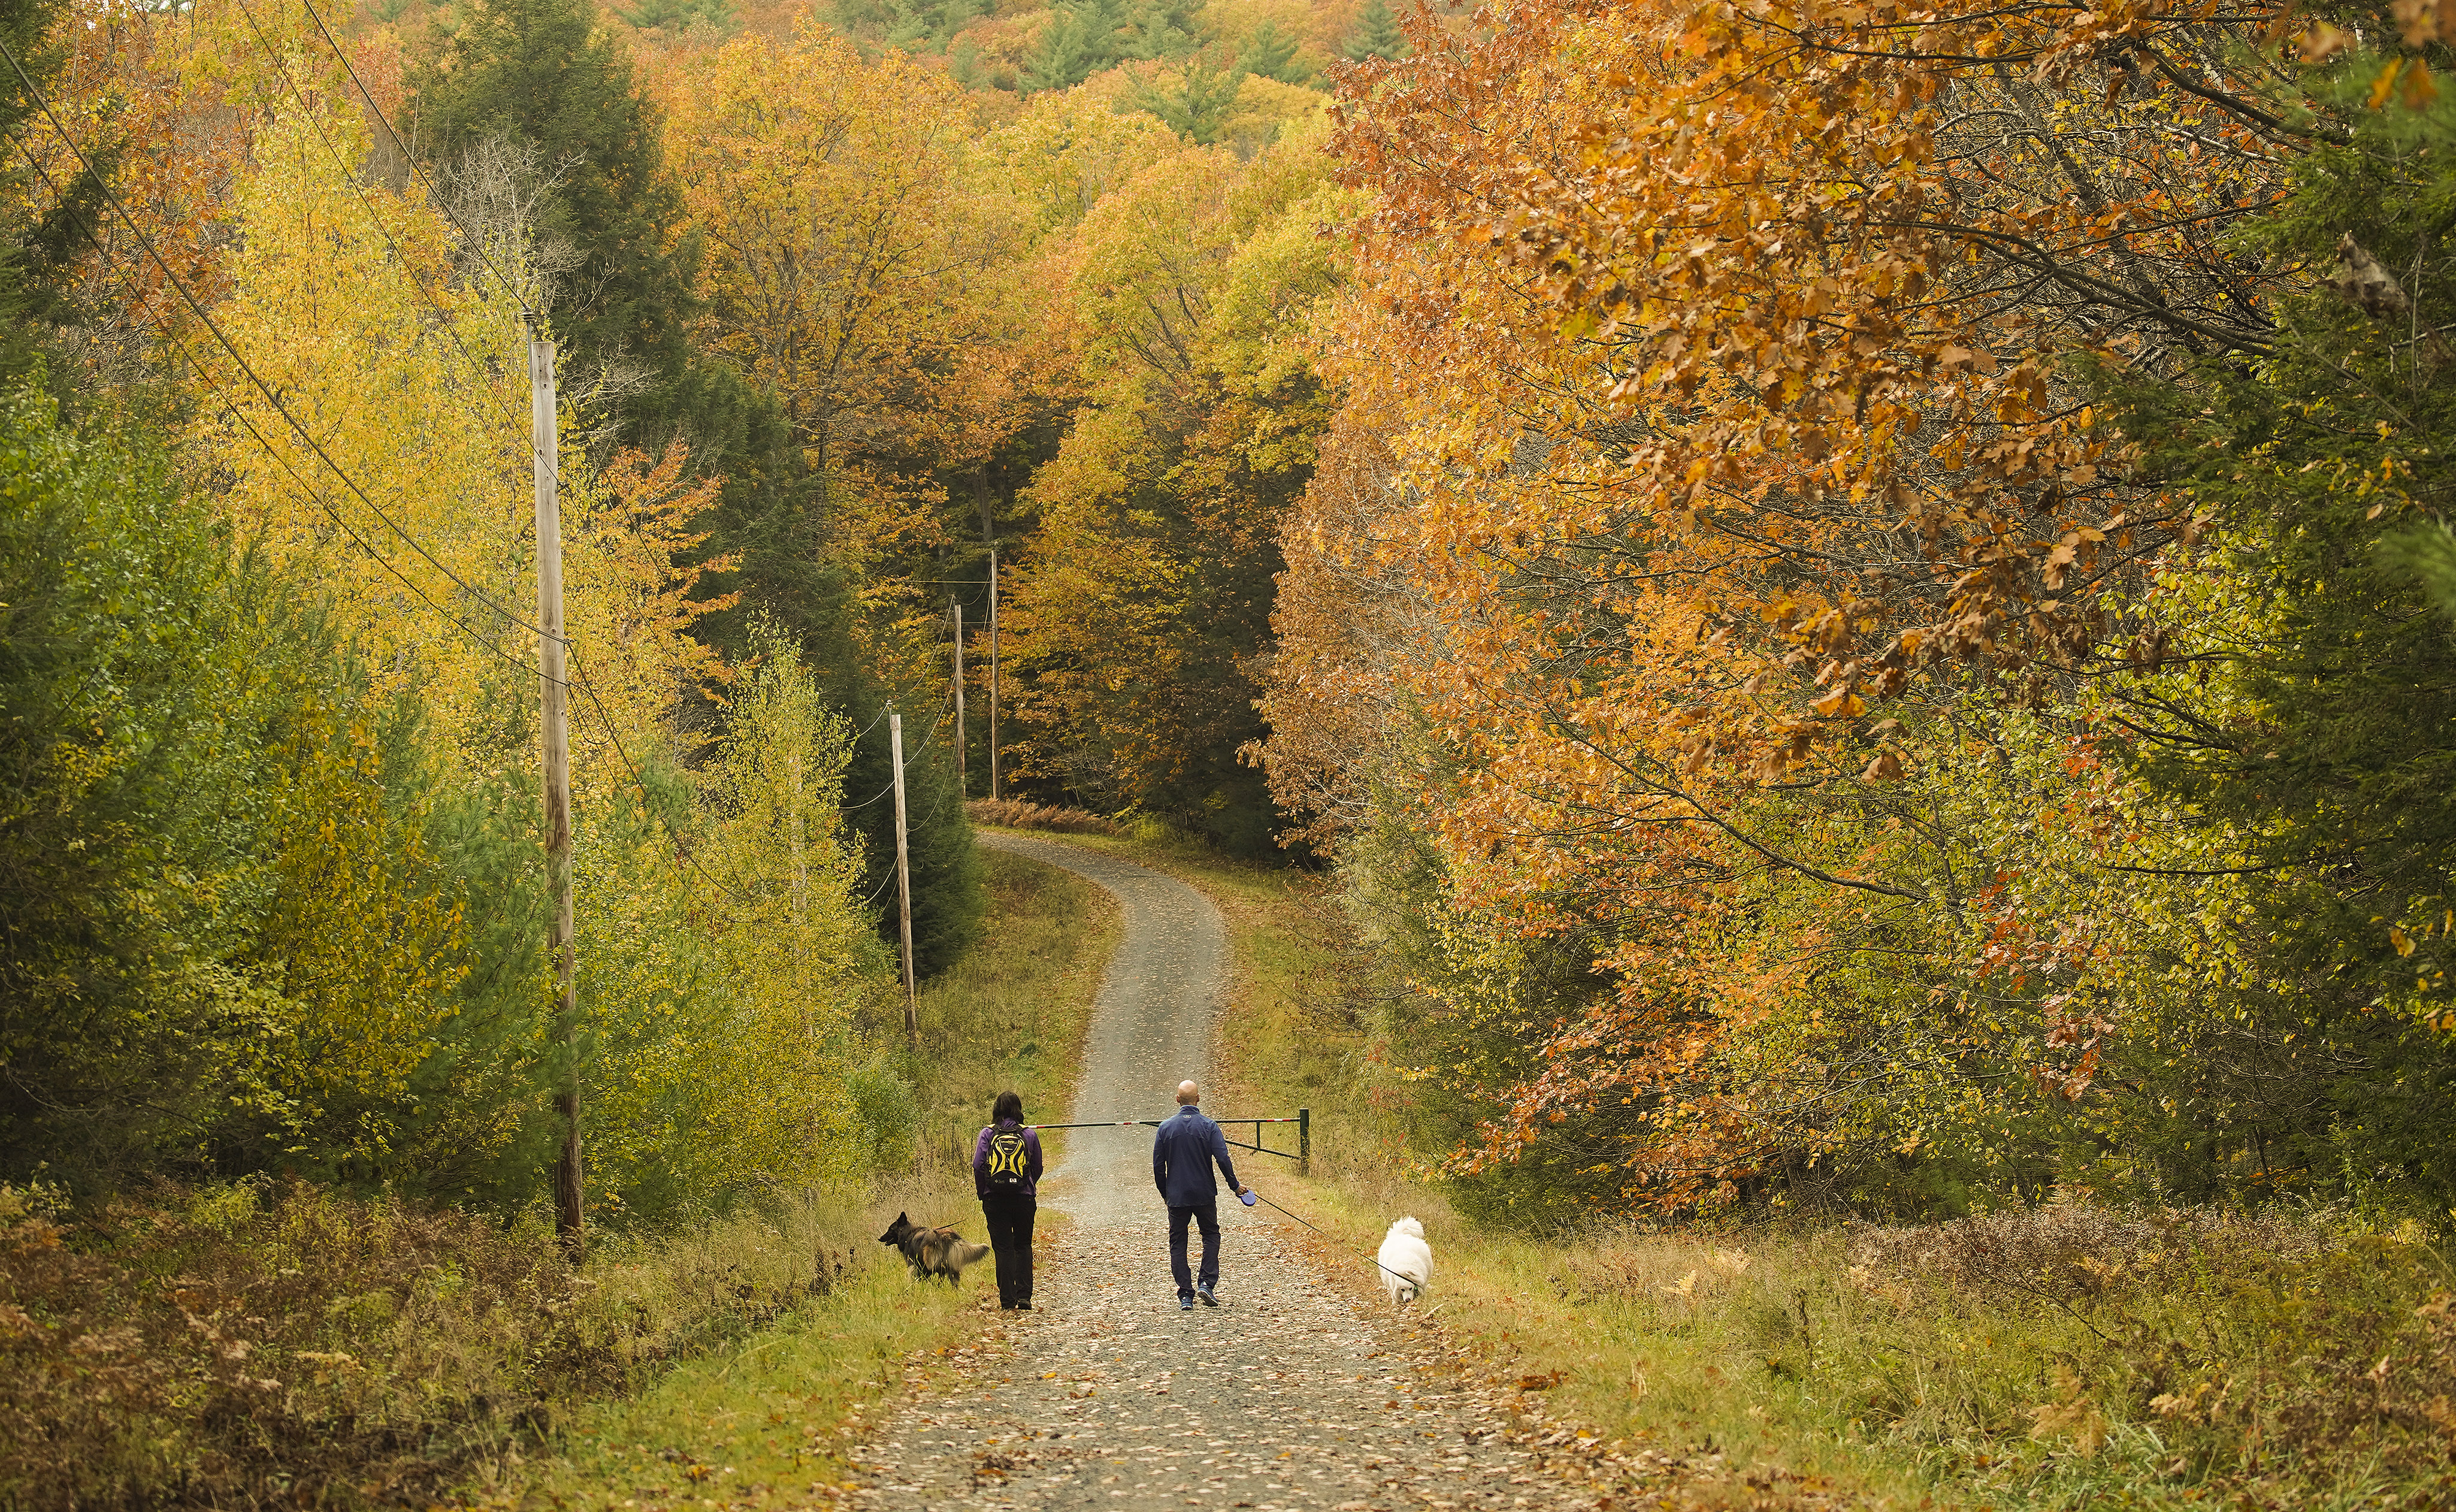 Hikers walk on a trail in Lebanon, New Hampshire on Friday, Oct. 18, 2019.